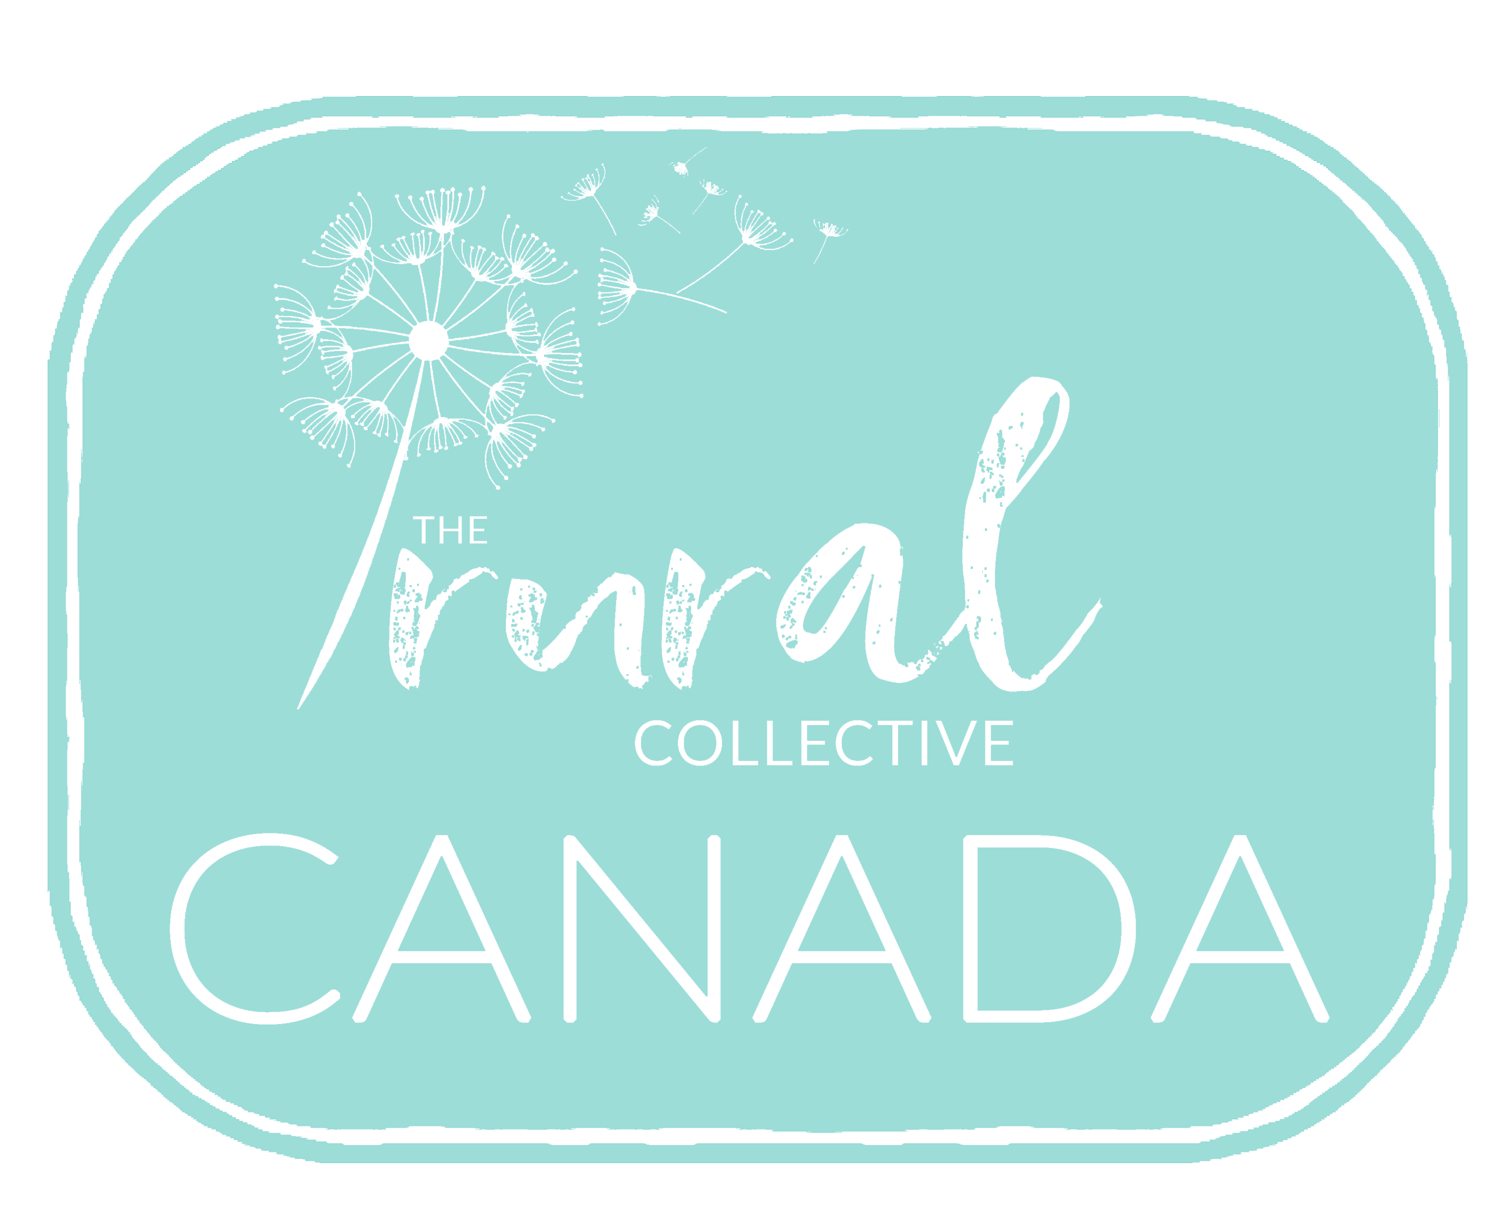 The Rural Collective Canada